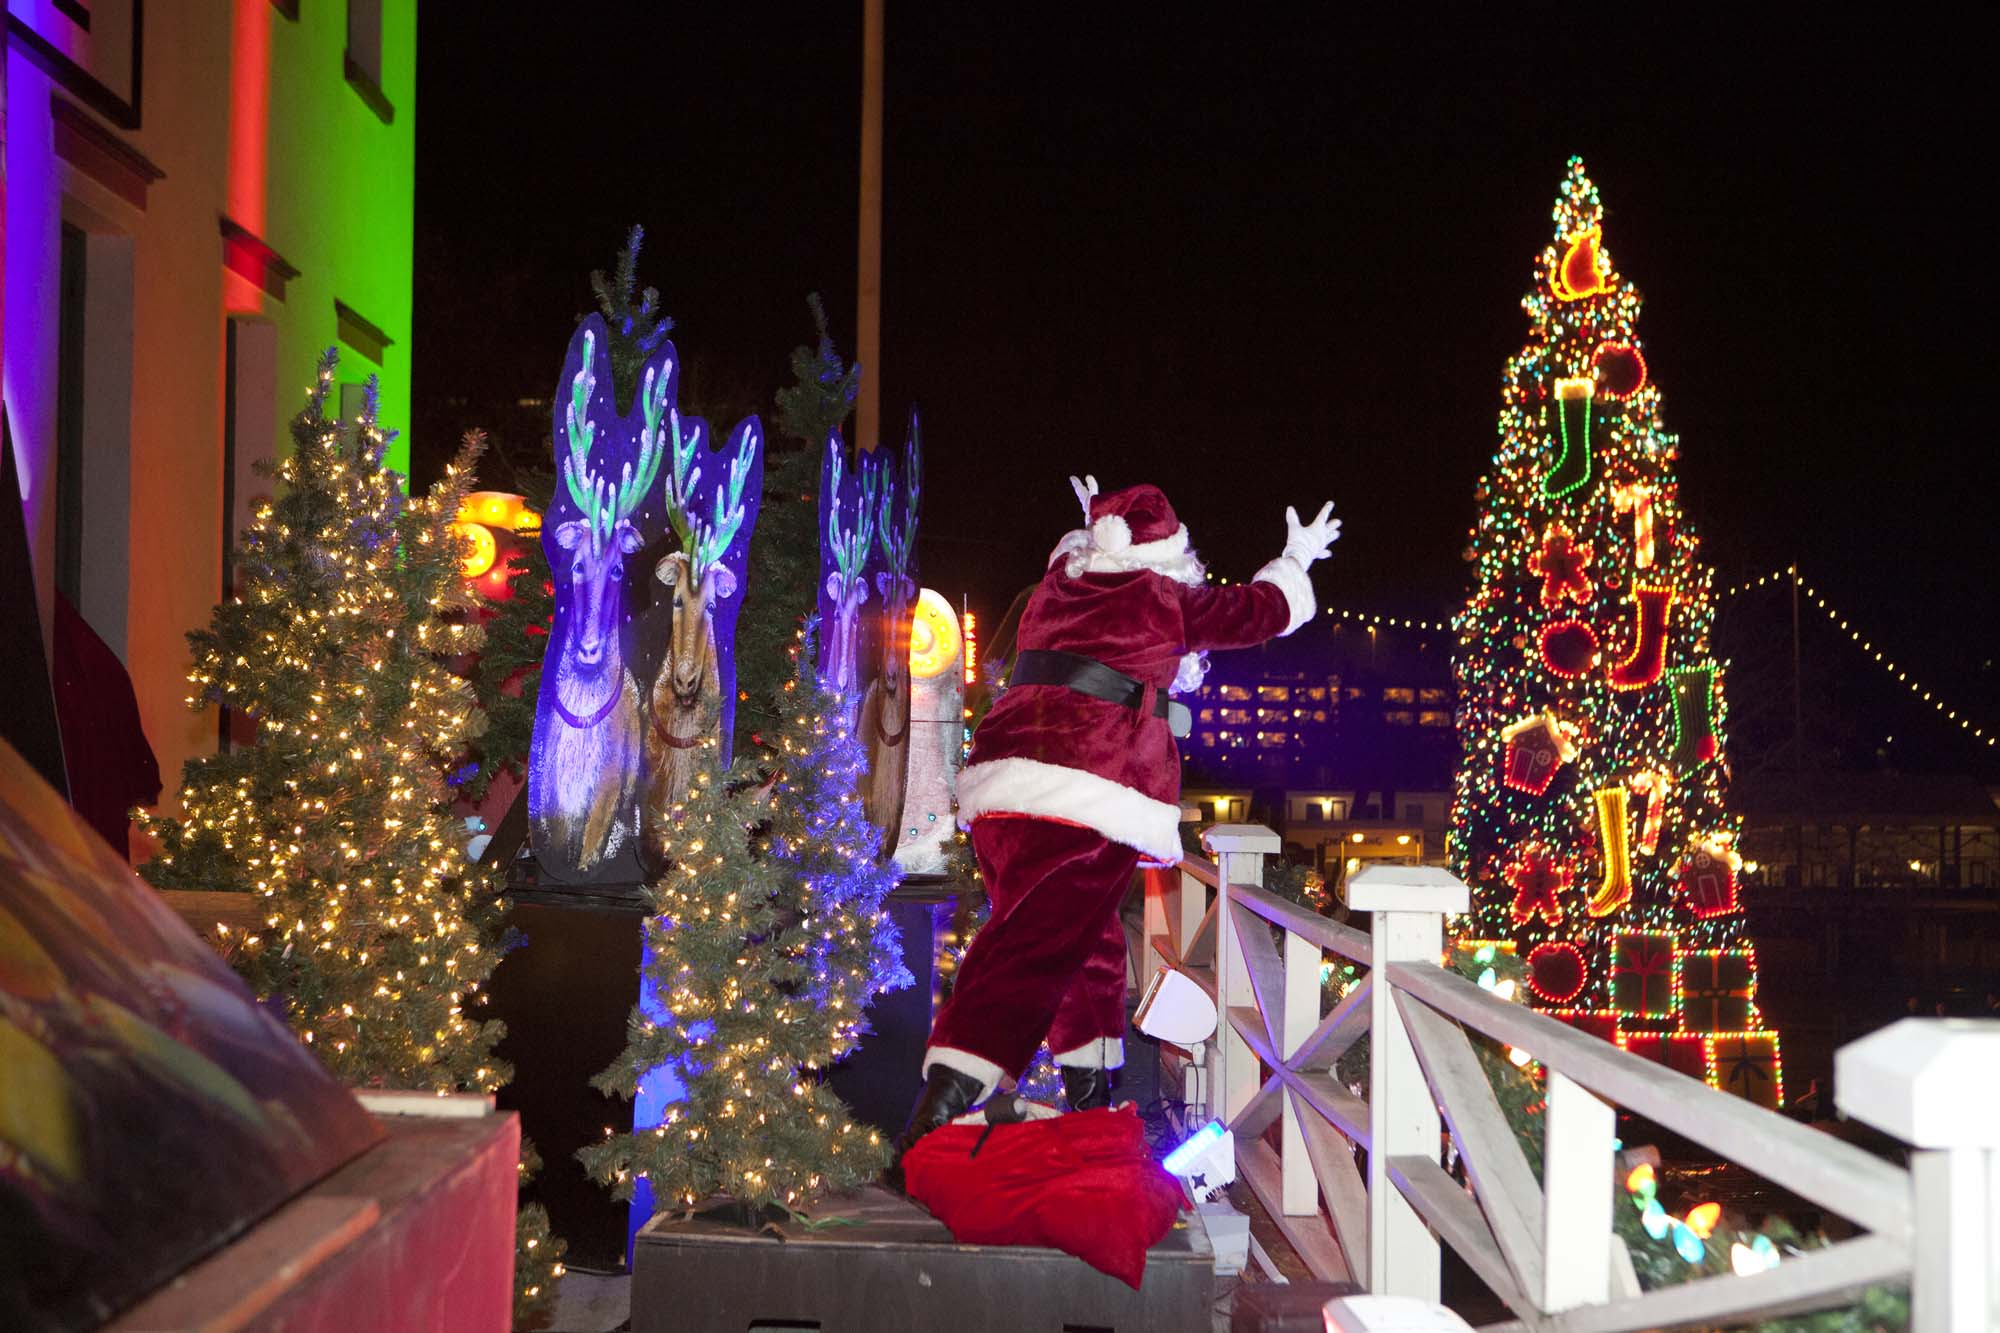 macys theatre of lights presented by downtown sacramento partnership holiday events sacramento365